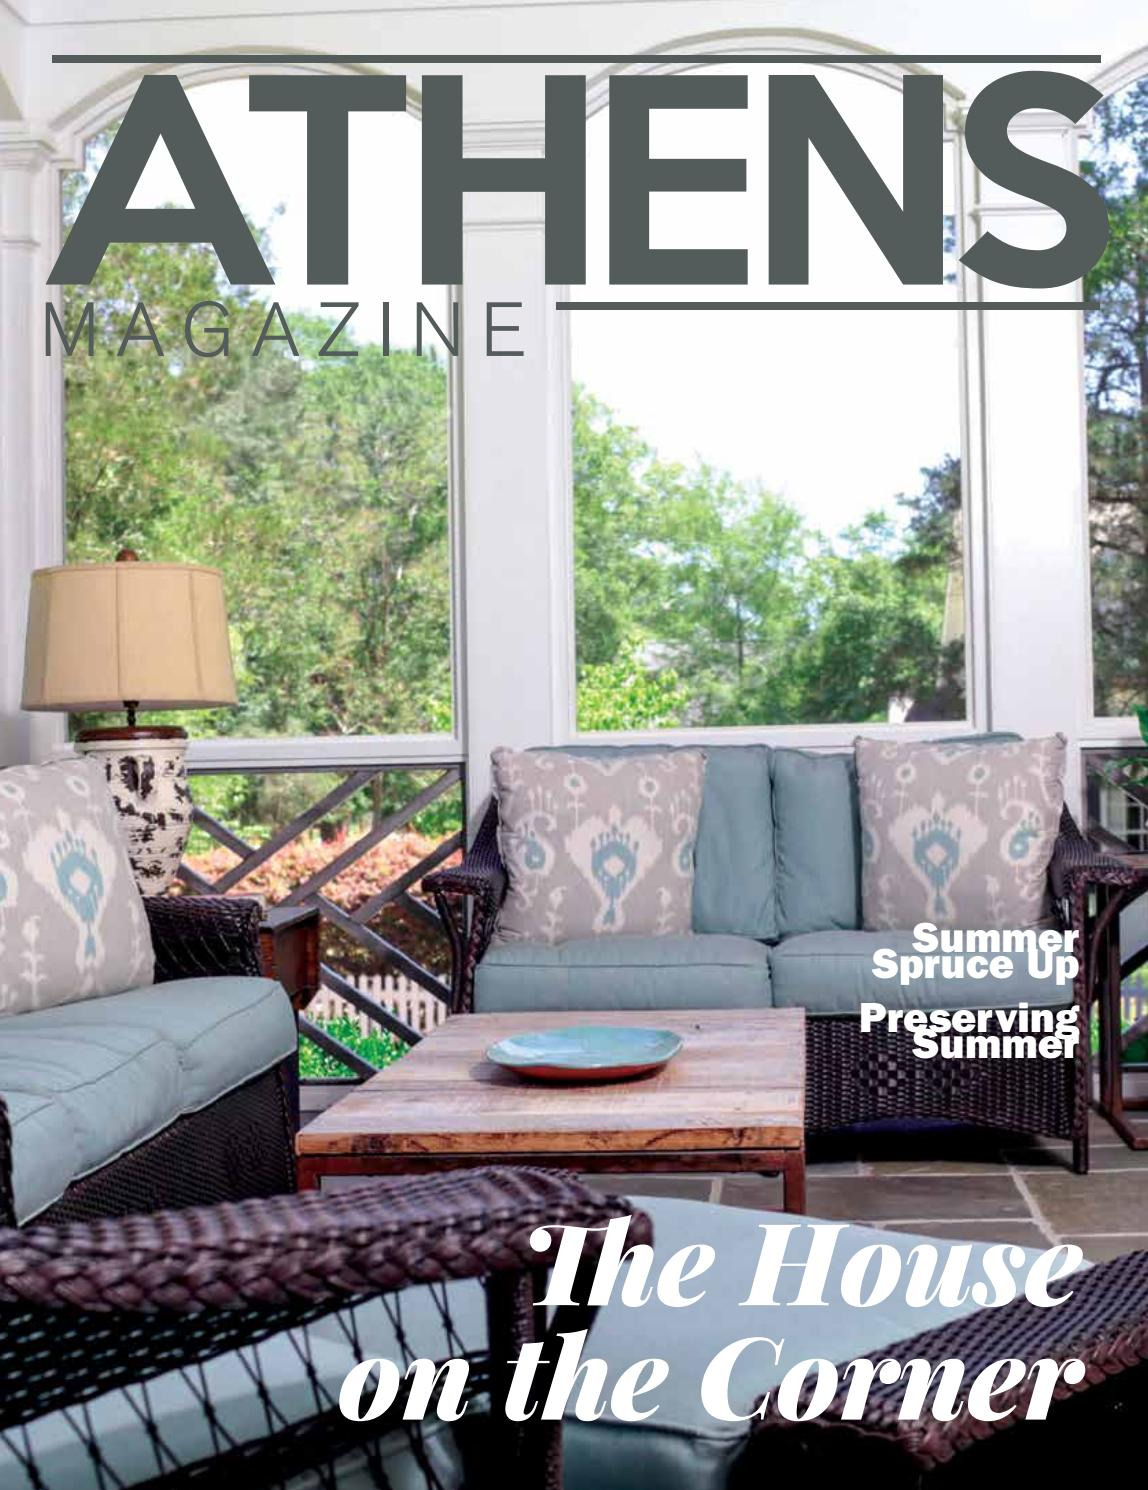 Antique Furniture athens Ga New athens Magazine Summer 2017 by Lineathens athens Banner